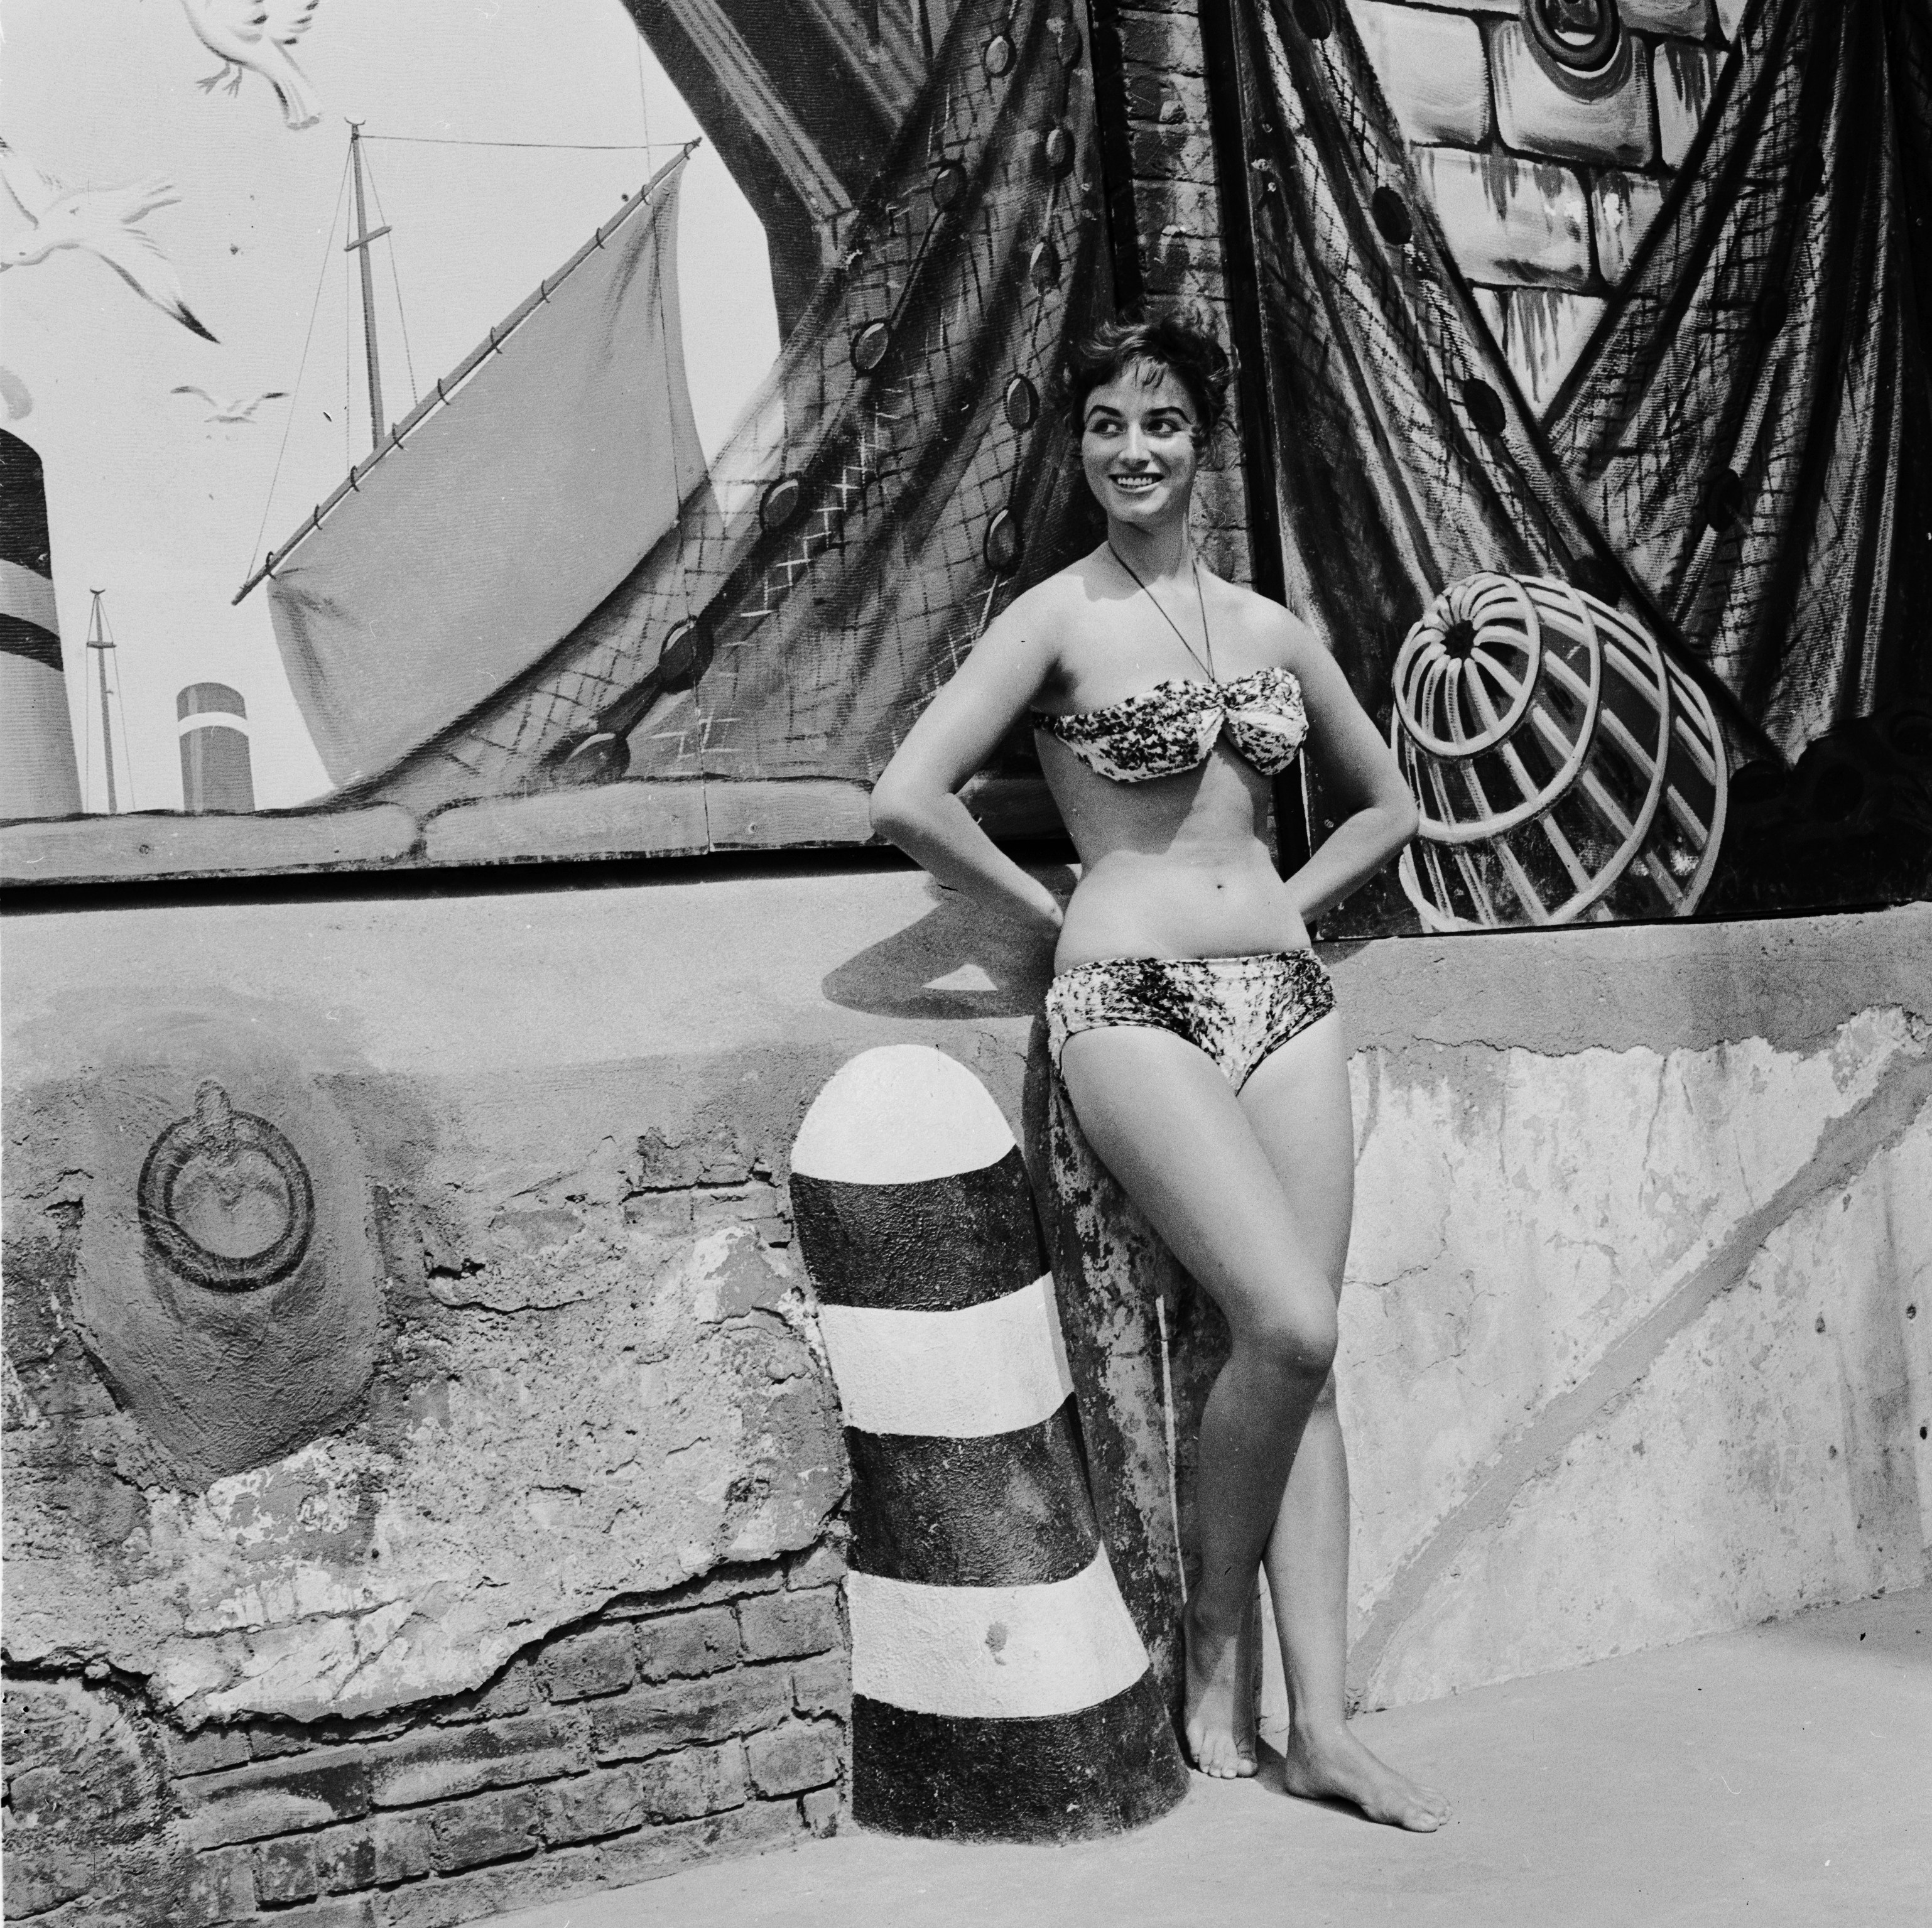 12th August 1955:  17-year-old starlet Jackie Collins, the younger sister of Joan Collins, cools off at the Oasis swimming pool in London's Holborn. She later made a name for herself as a novelist.  (Photo by John Pratt/Keystone Features/Getty Images)